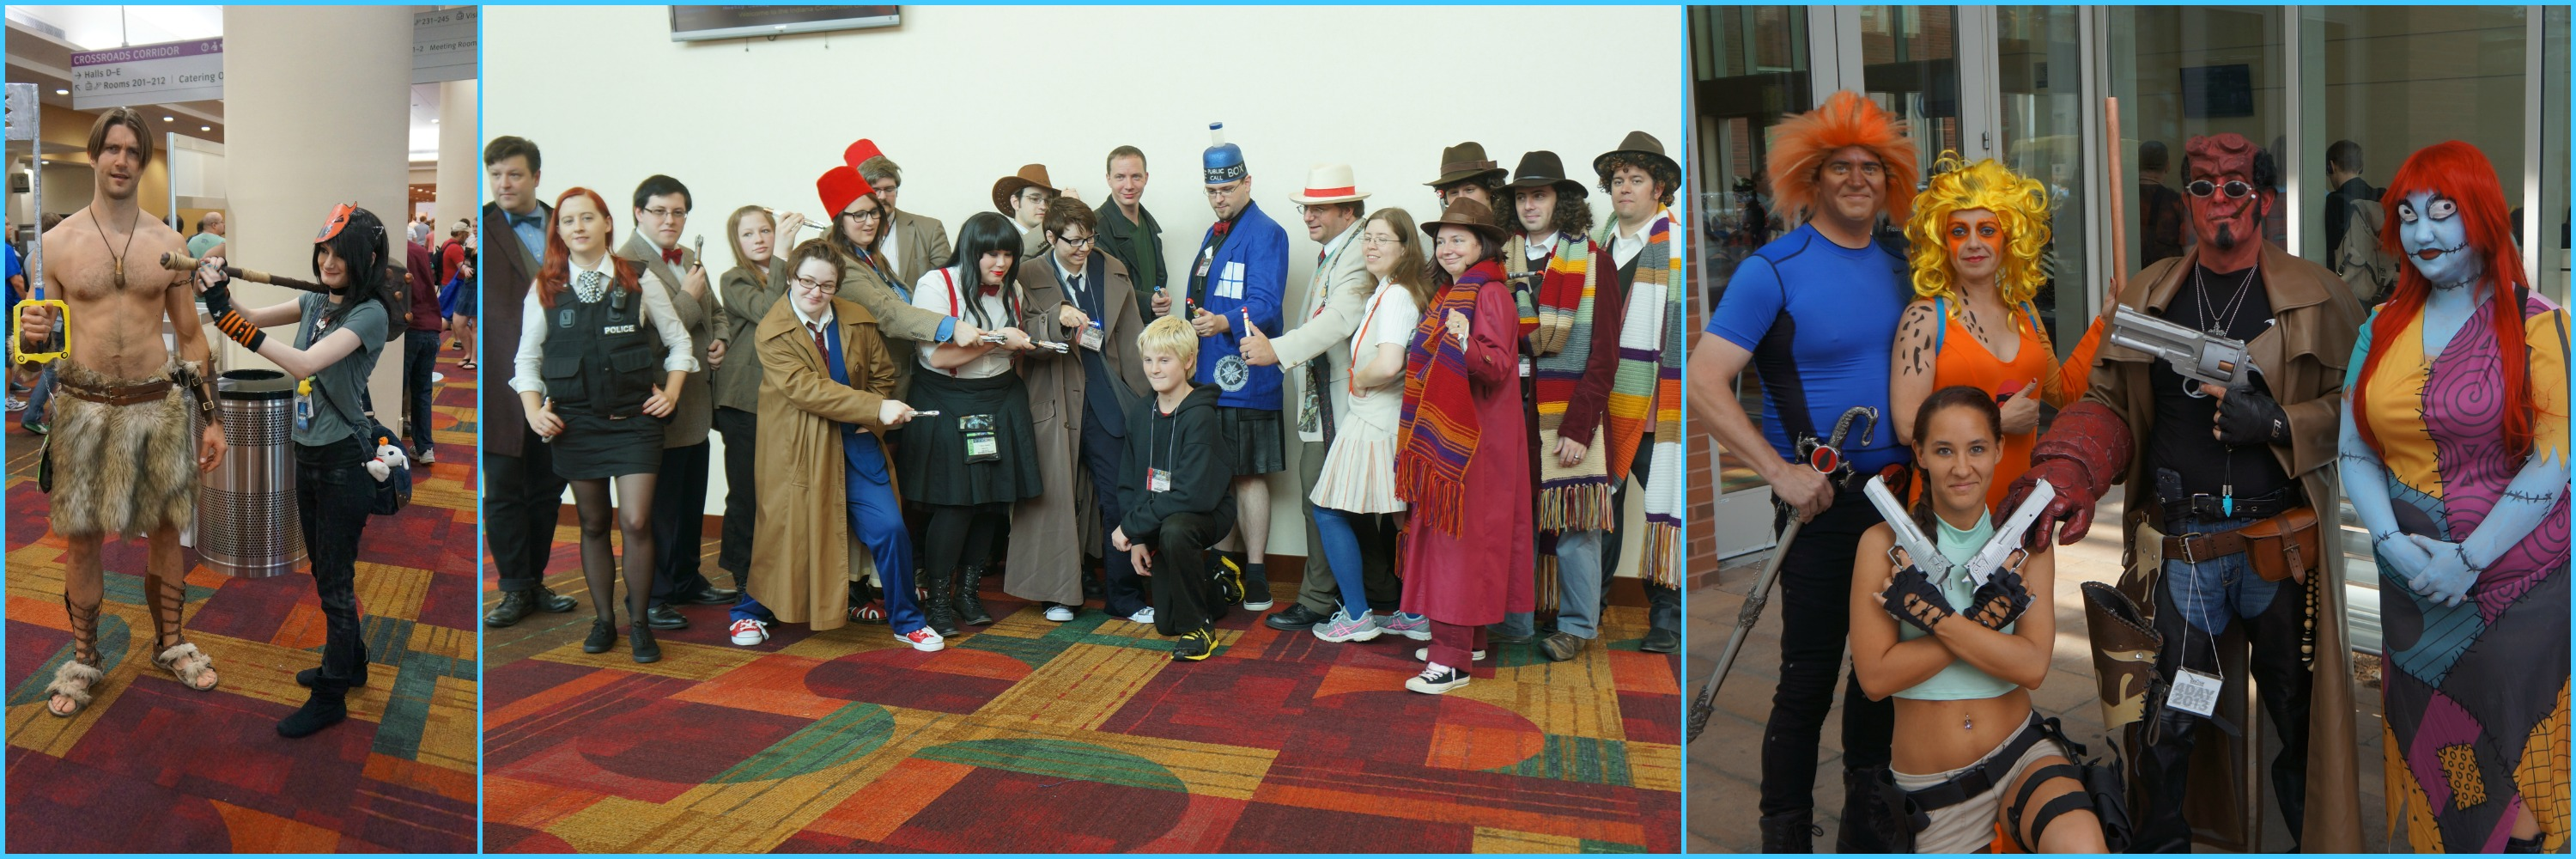 GenCon2014Collage